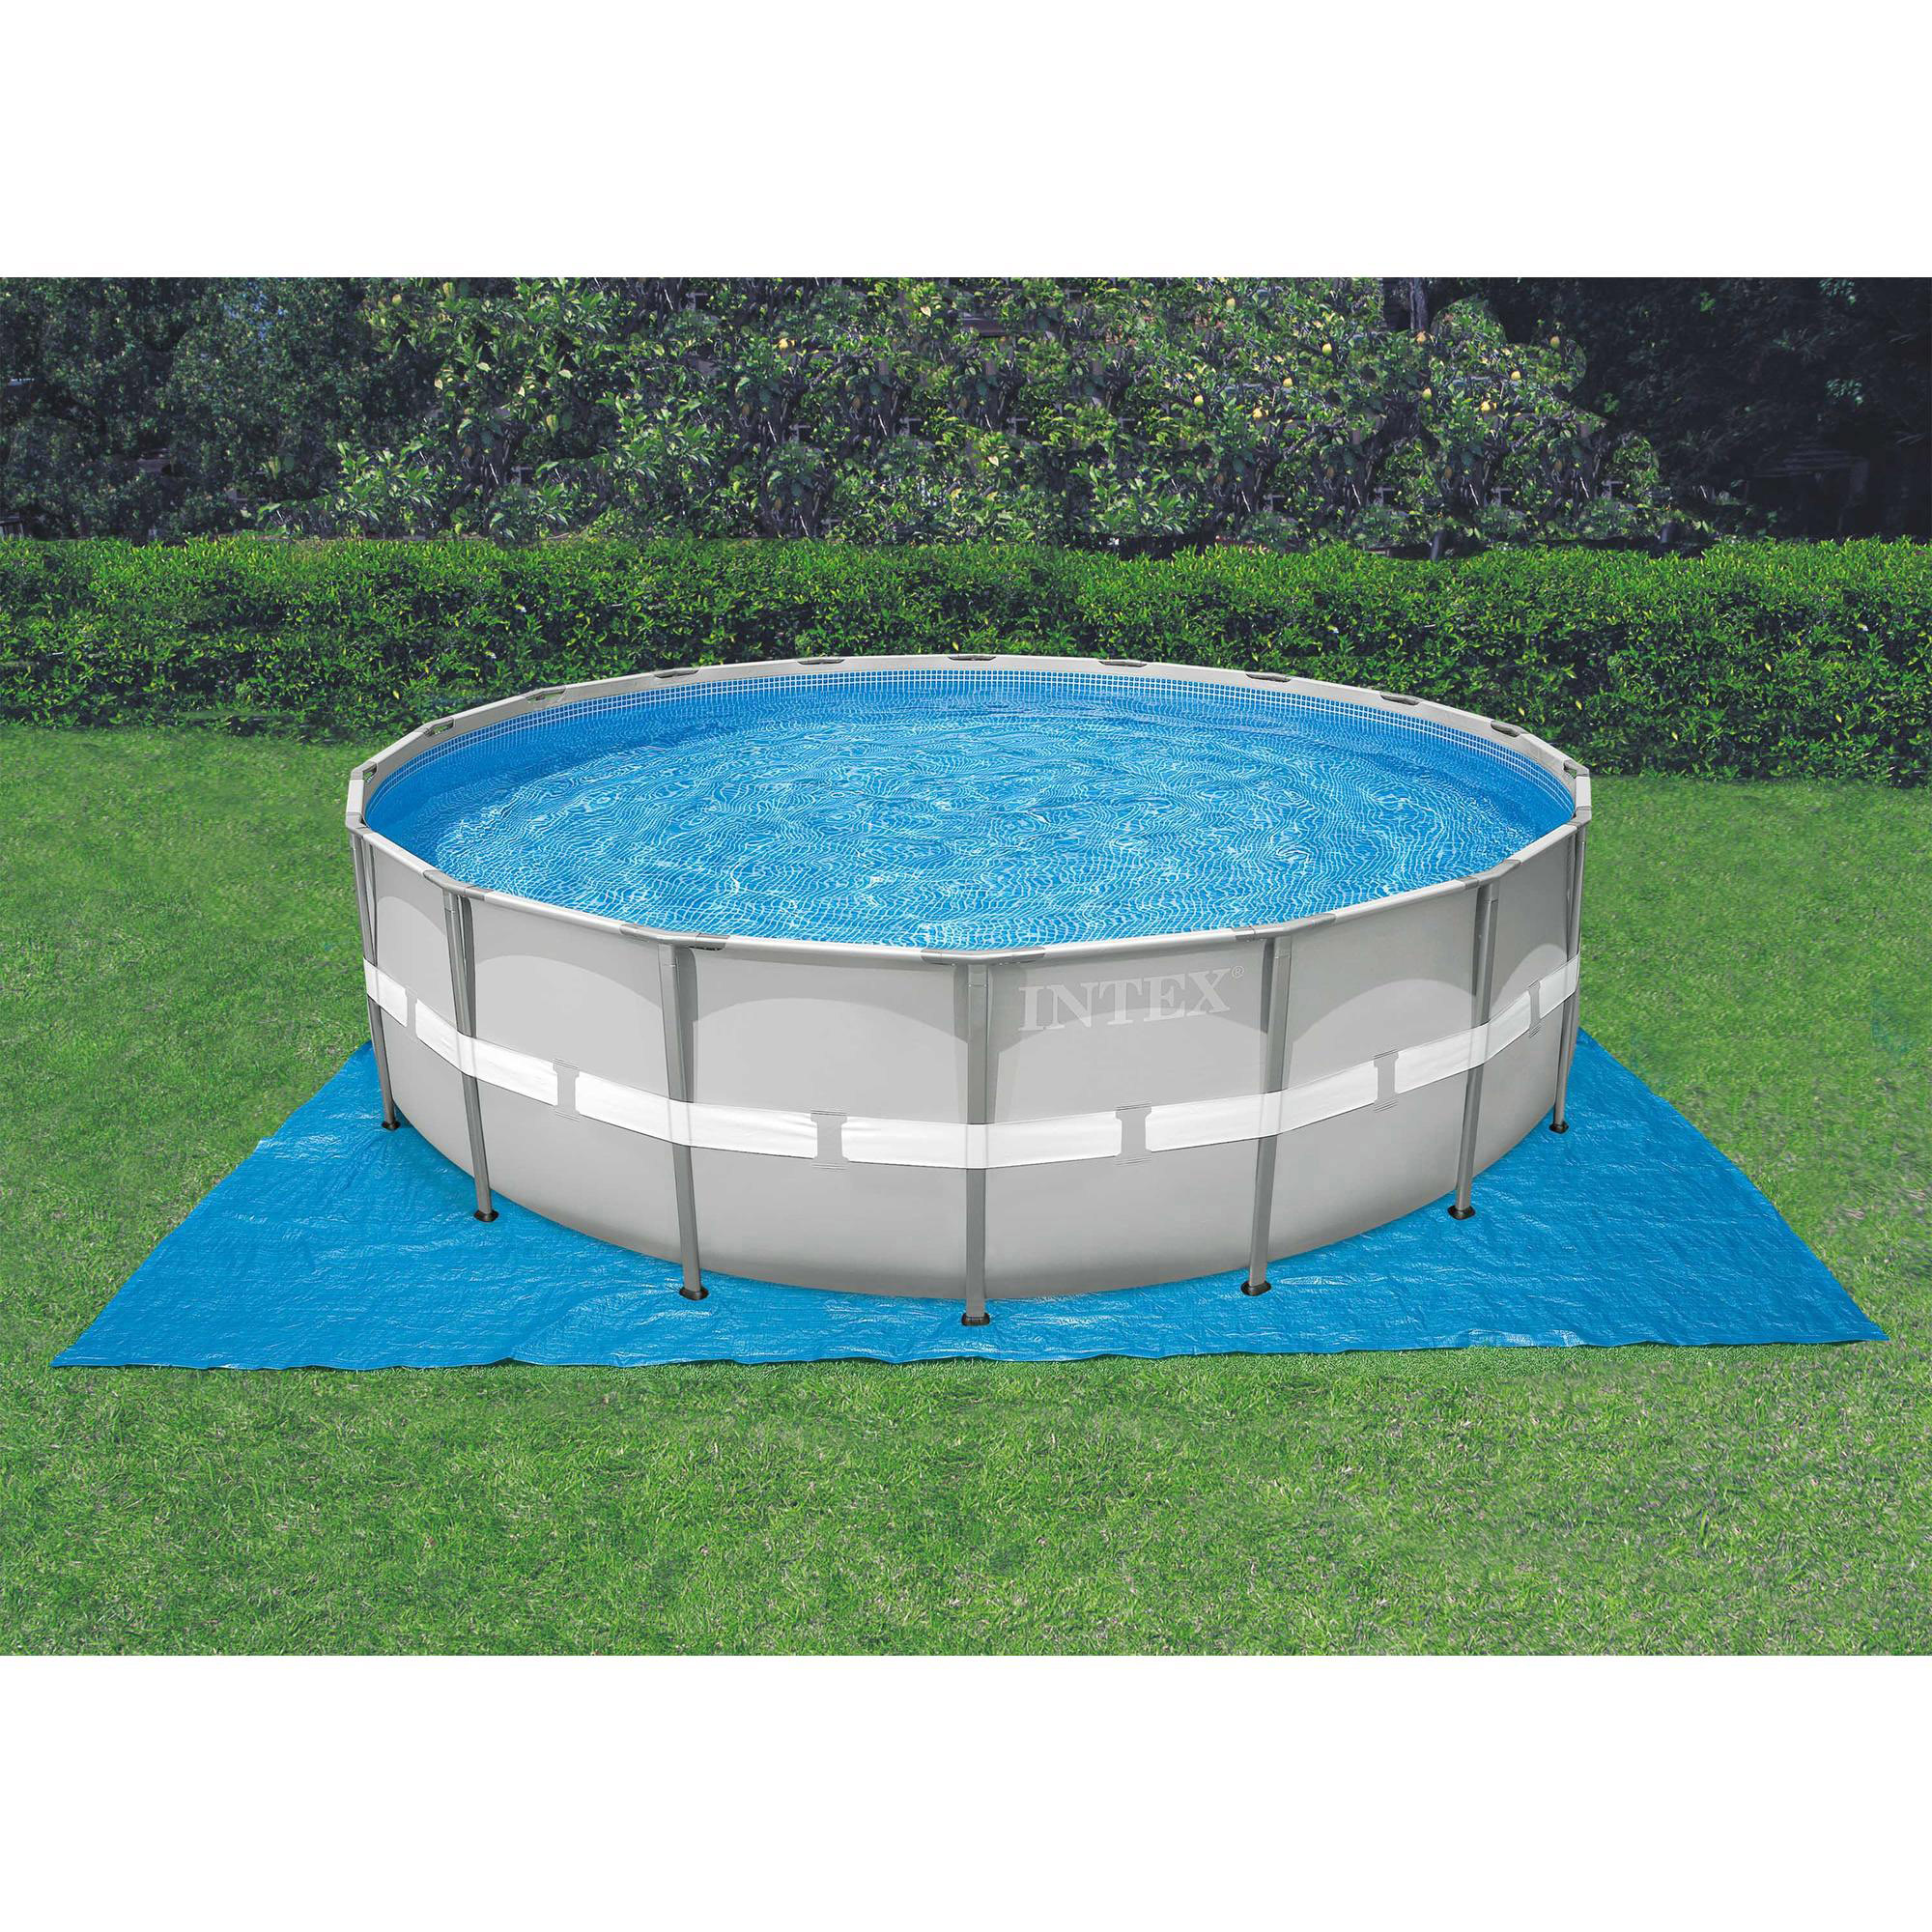 intex 24 39 x 52 ultra frame above ground swimming pool set. Black Bedroom Furniture Sets. Home Design Ideas